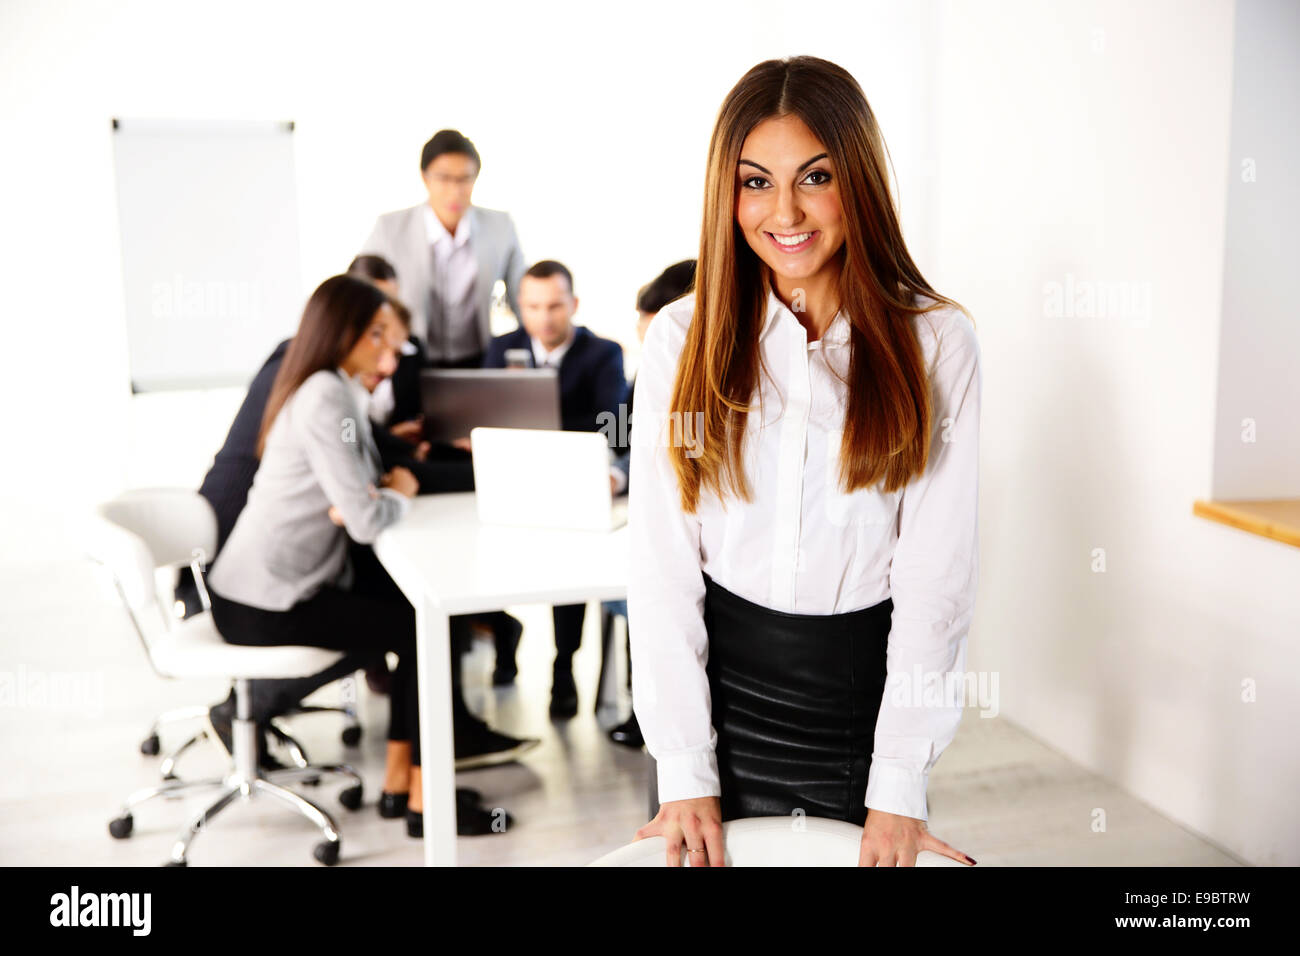 Portrait of a happy businesswoman in front of business meeting - Stock Image